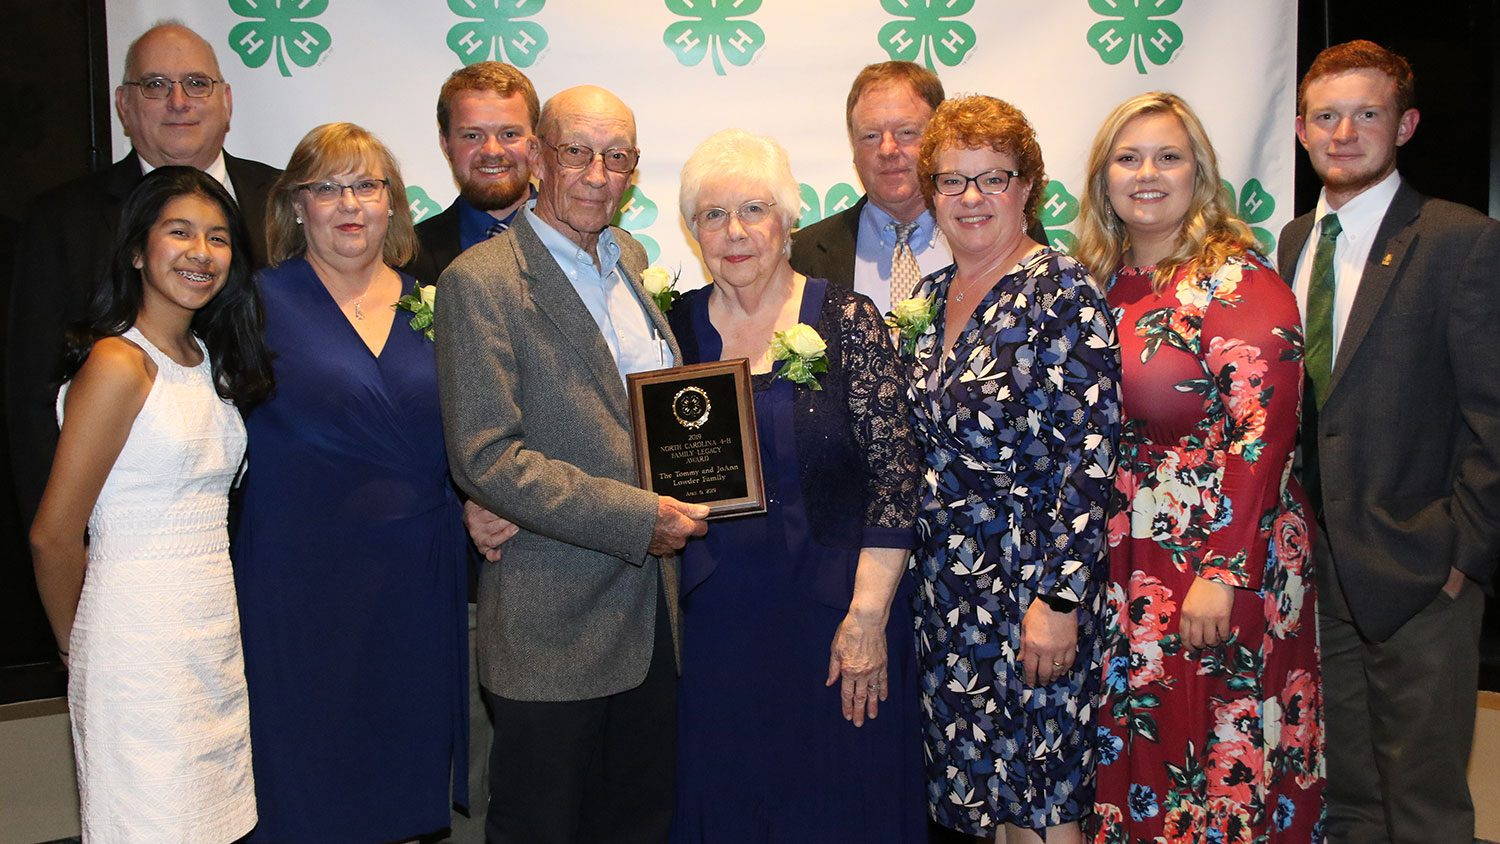 Group photo of family who received 4-H Family Legacy Award.